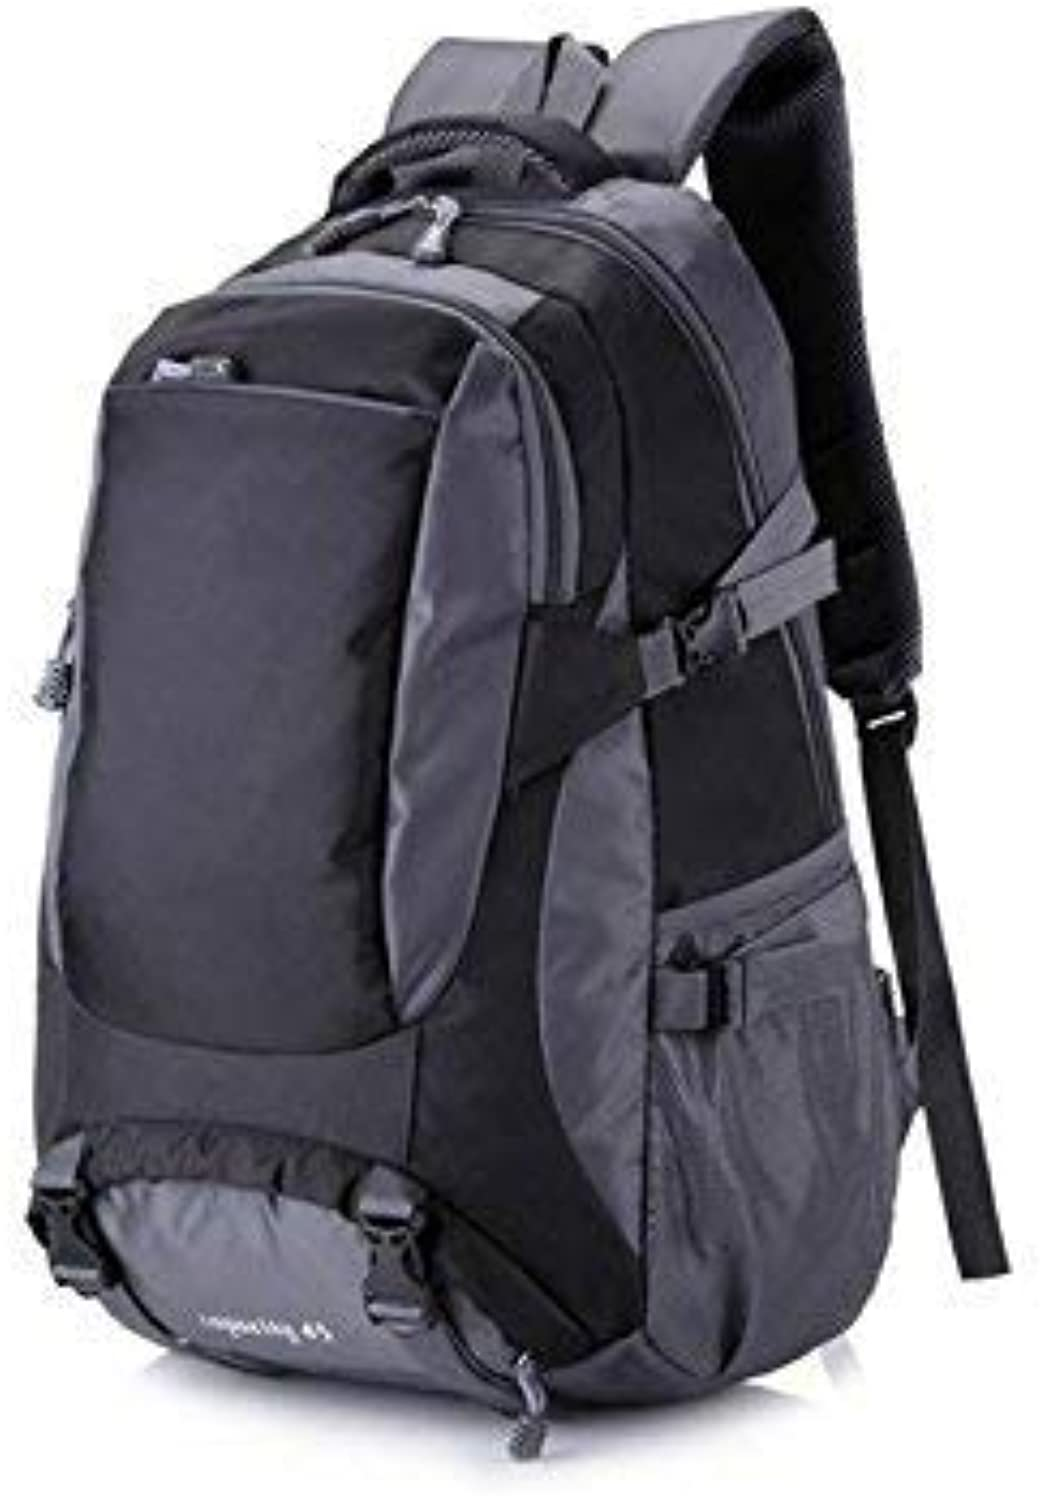 Travel Camping Backpack, Outdoor and Indoor Men Women Sports Outdoor Large Capacity Climbing Backpack Hiking Travel Bag(Black)